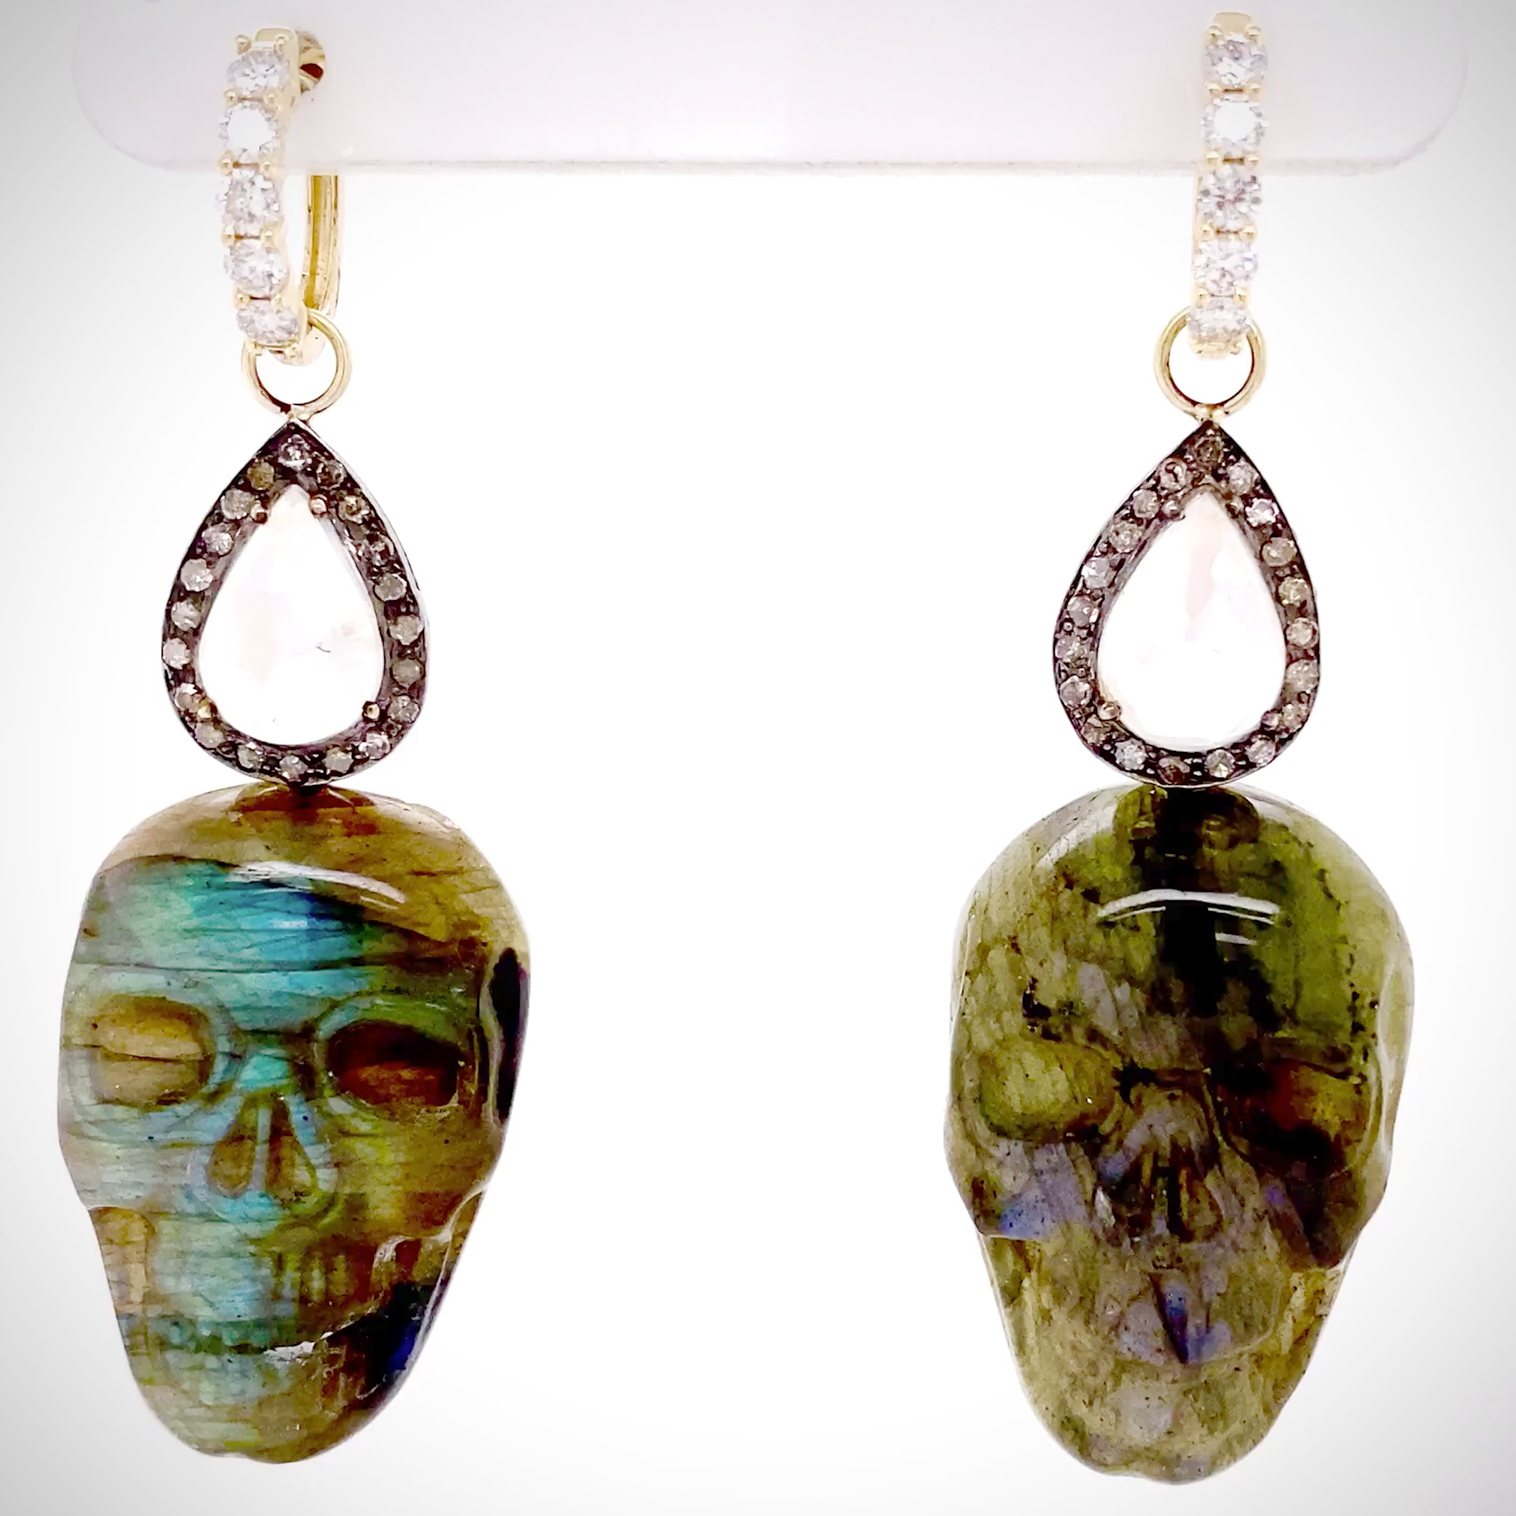 One-of-a-kind pair of carved Spectralite skulls accented with Blue flash Moonstone pear shapes surrounded by Diamonds